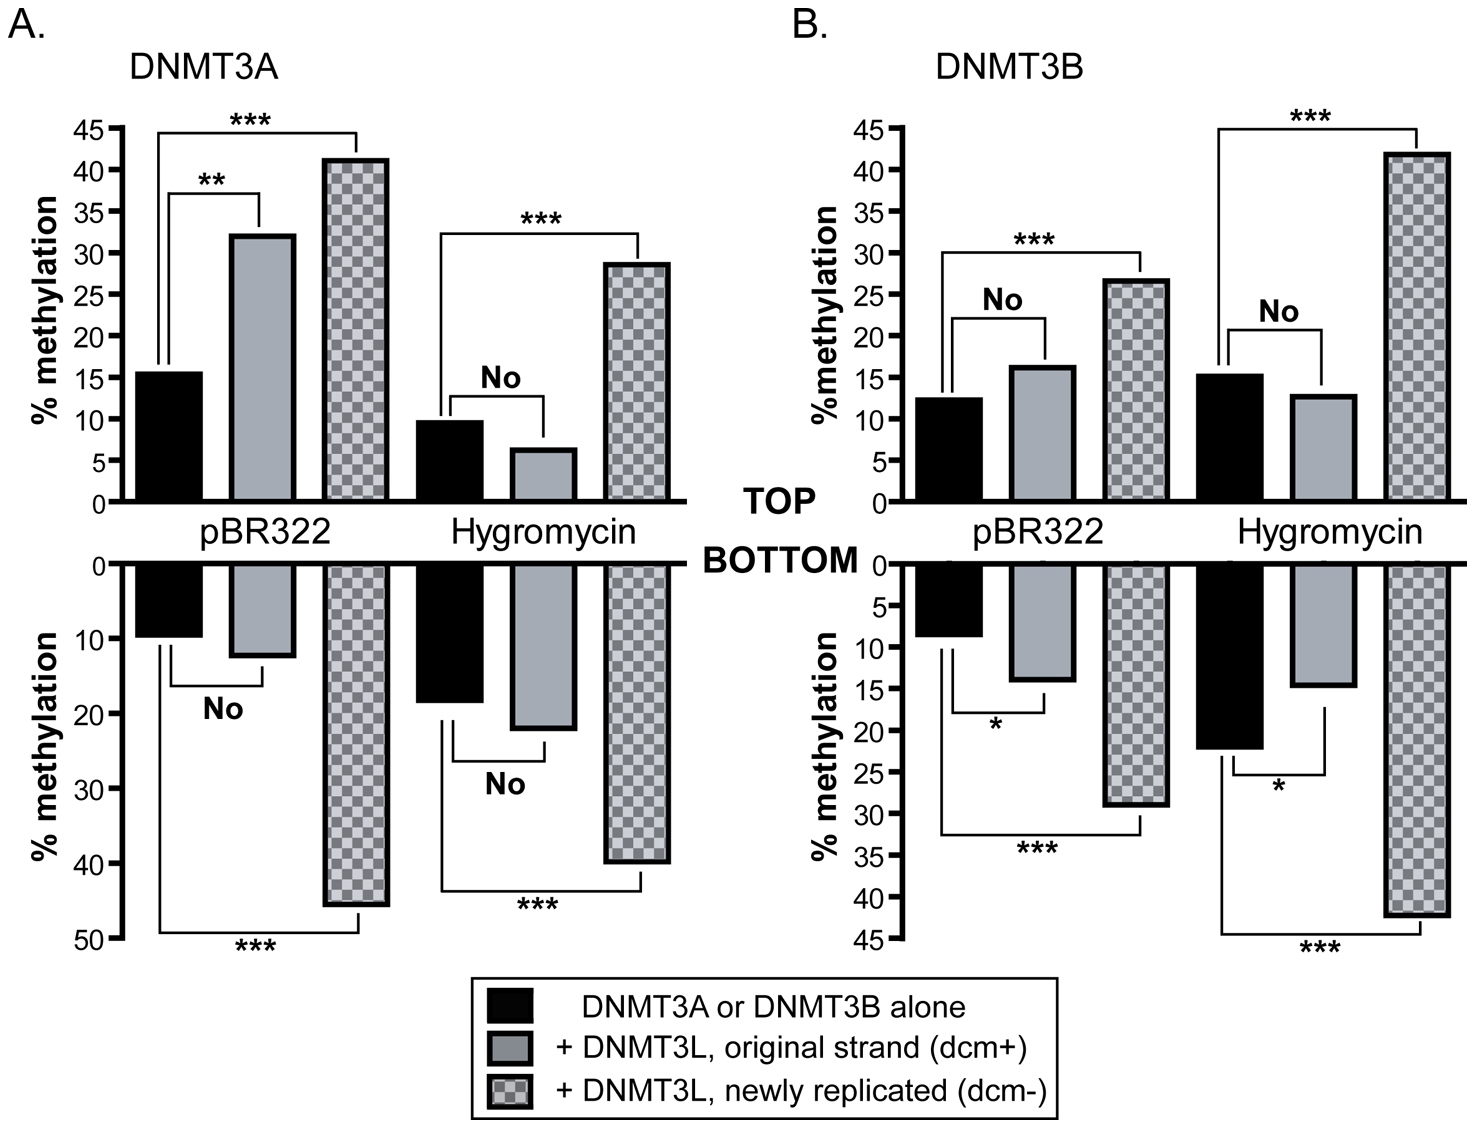 Stimulation by DNMT3L is observed primarily on newly replicated DNA strands.